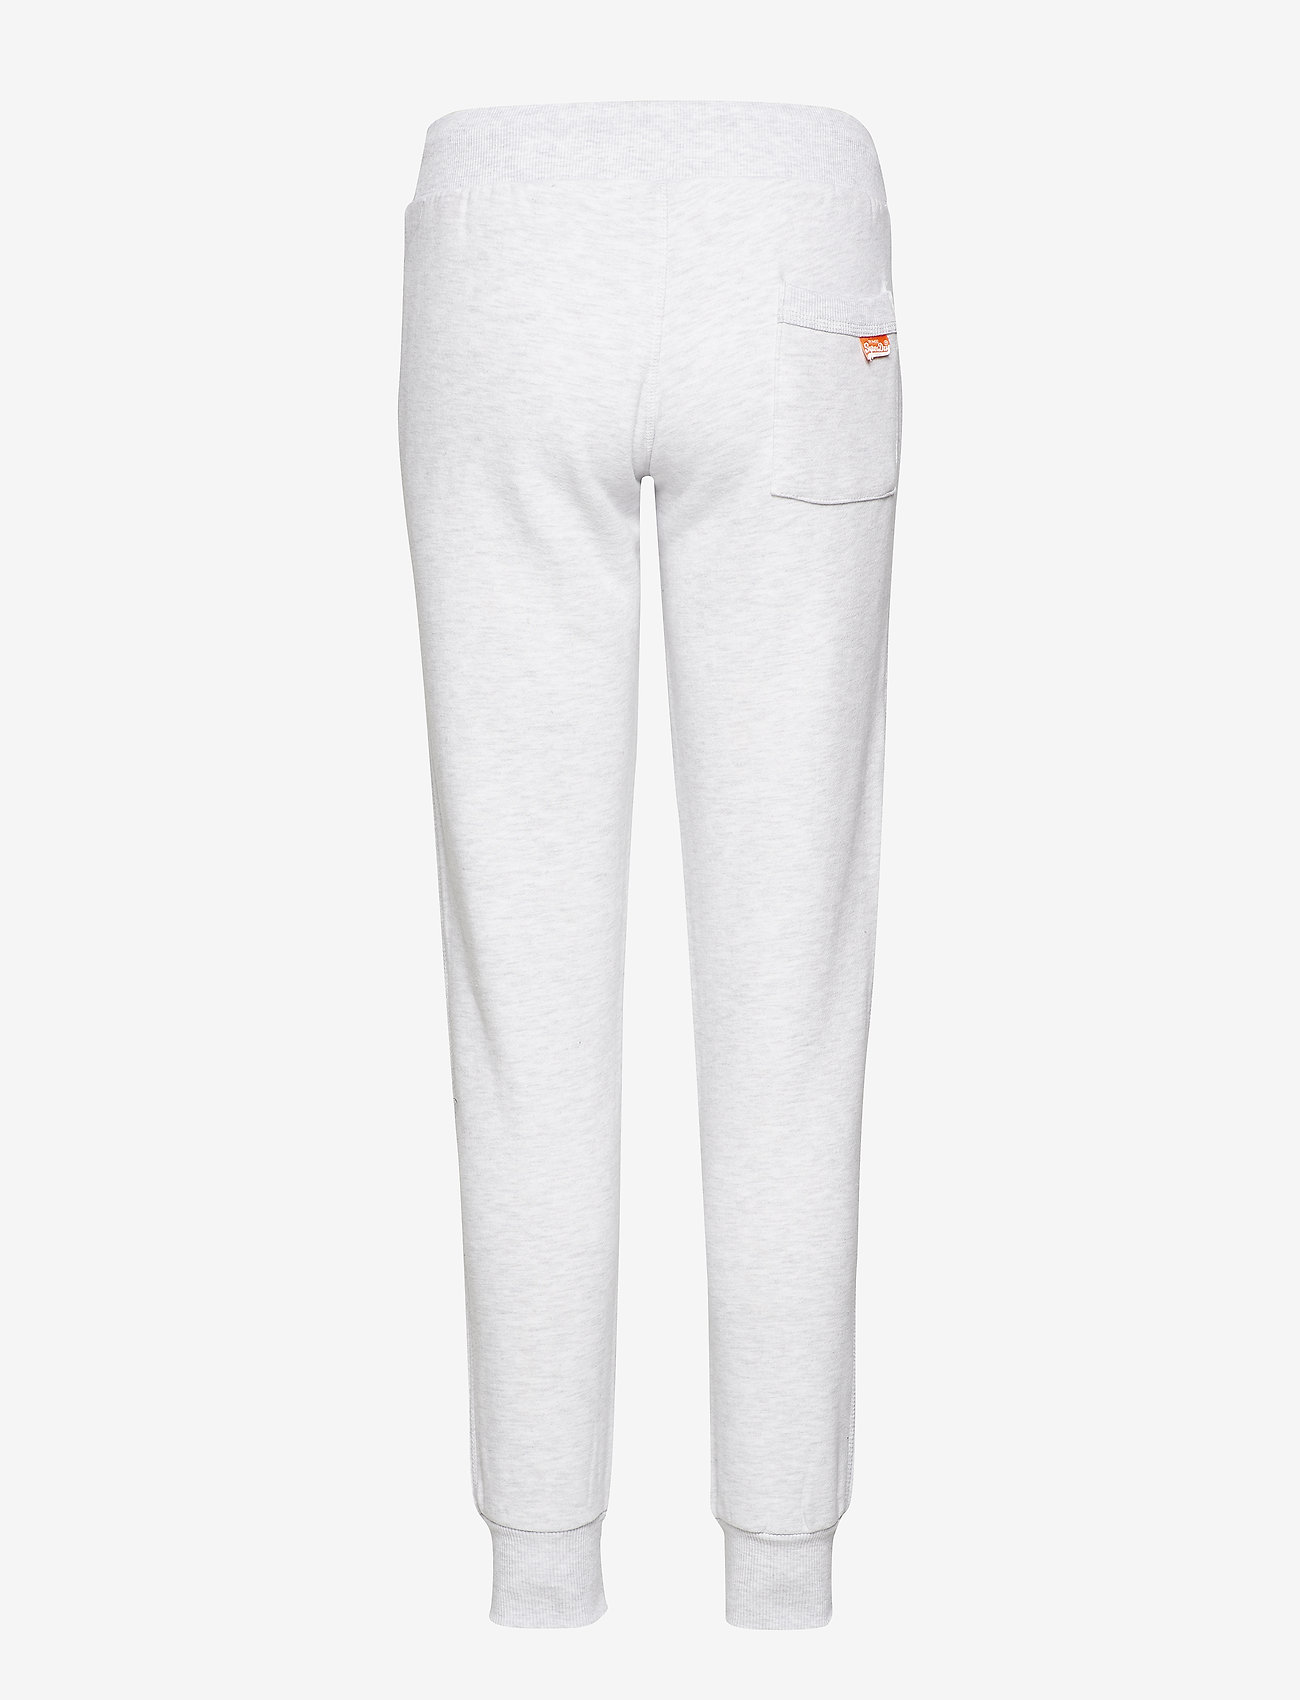 Superdry - ORANGE LABEL JOGGER - trainingsbroek - ice marl - 1